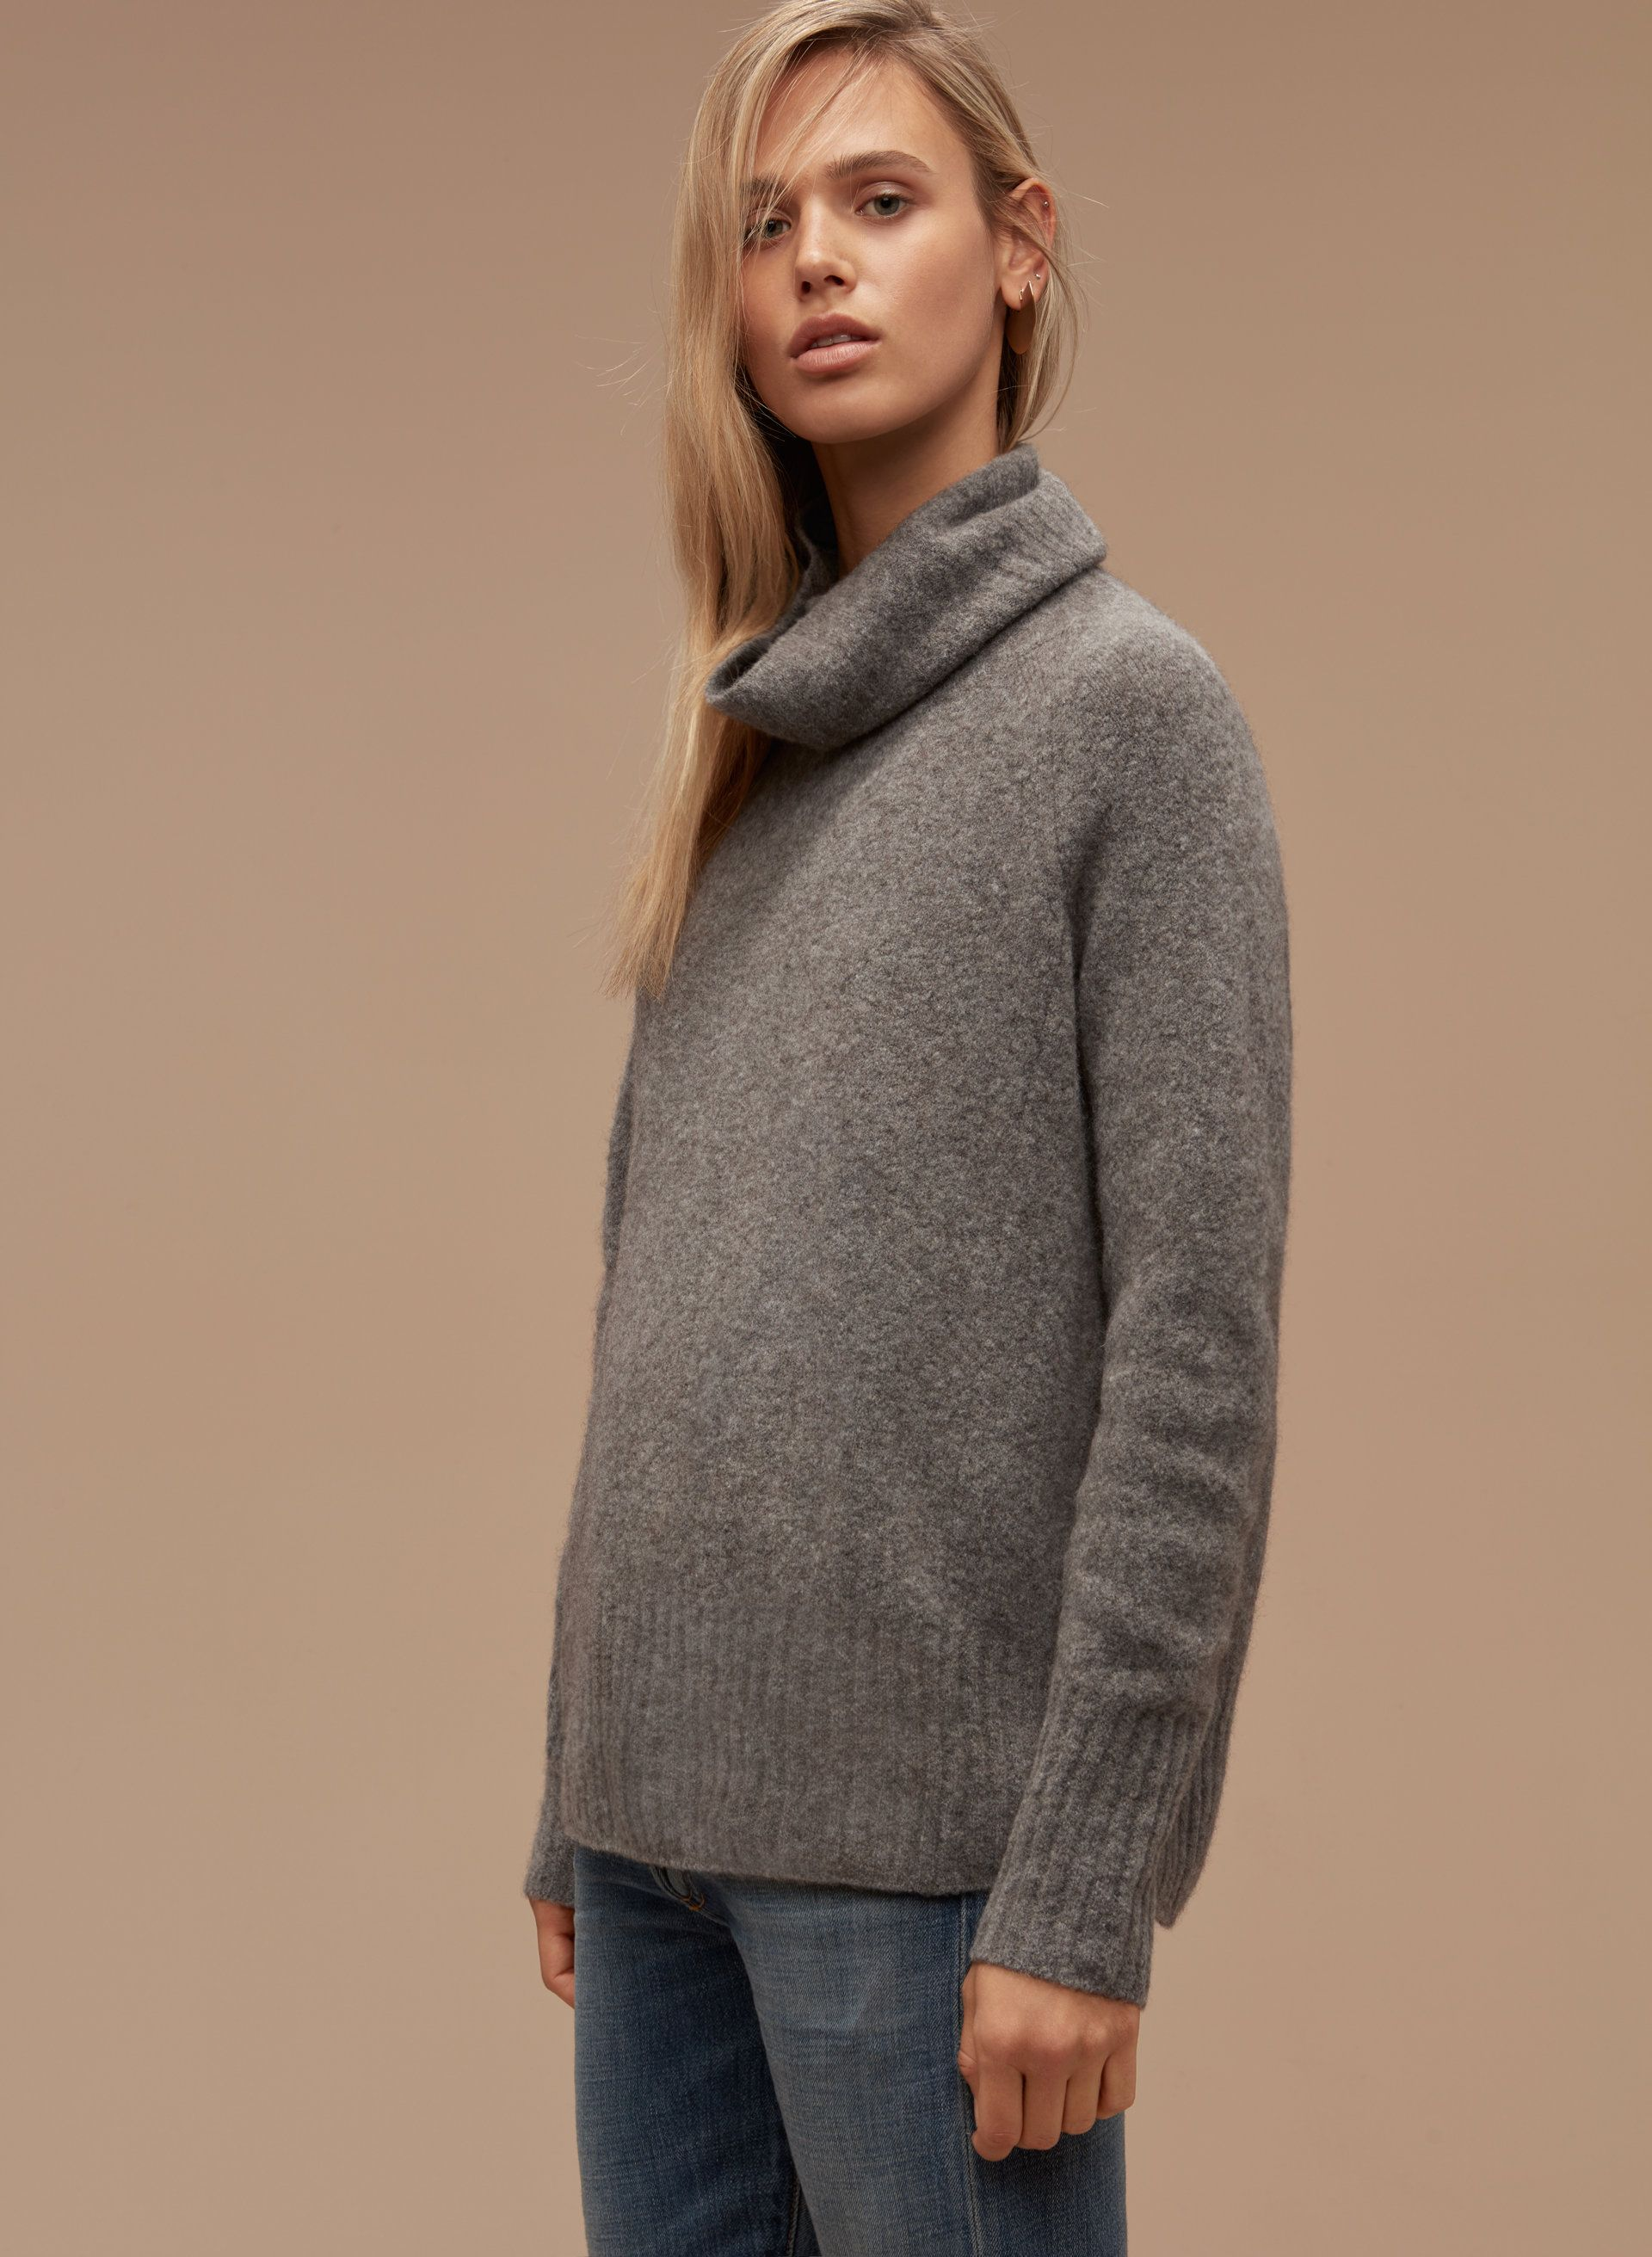 Get wrapped up with an oversized knit Aritzia